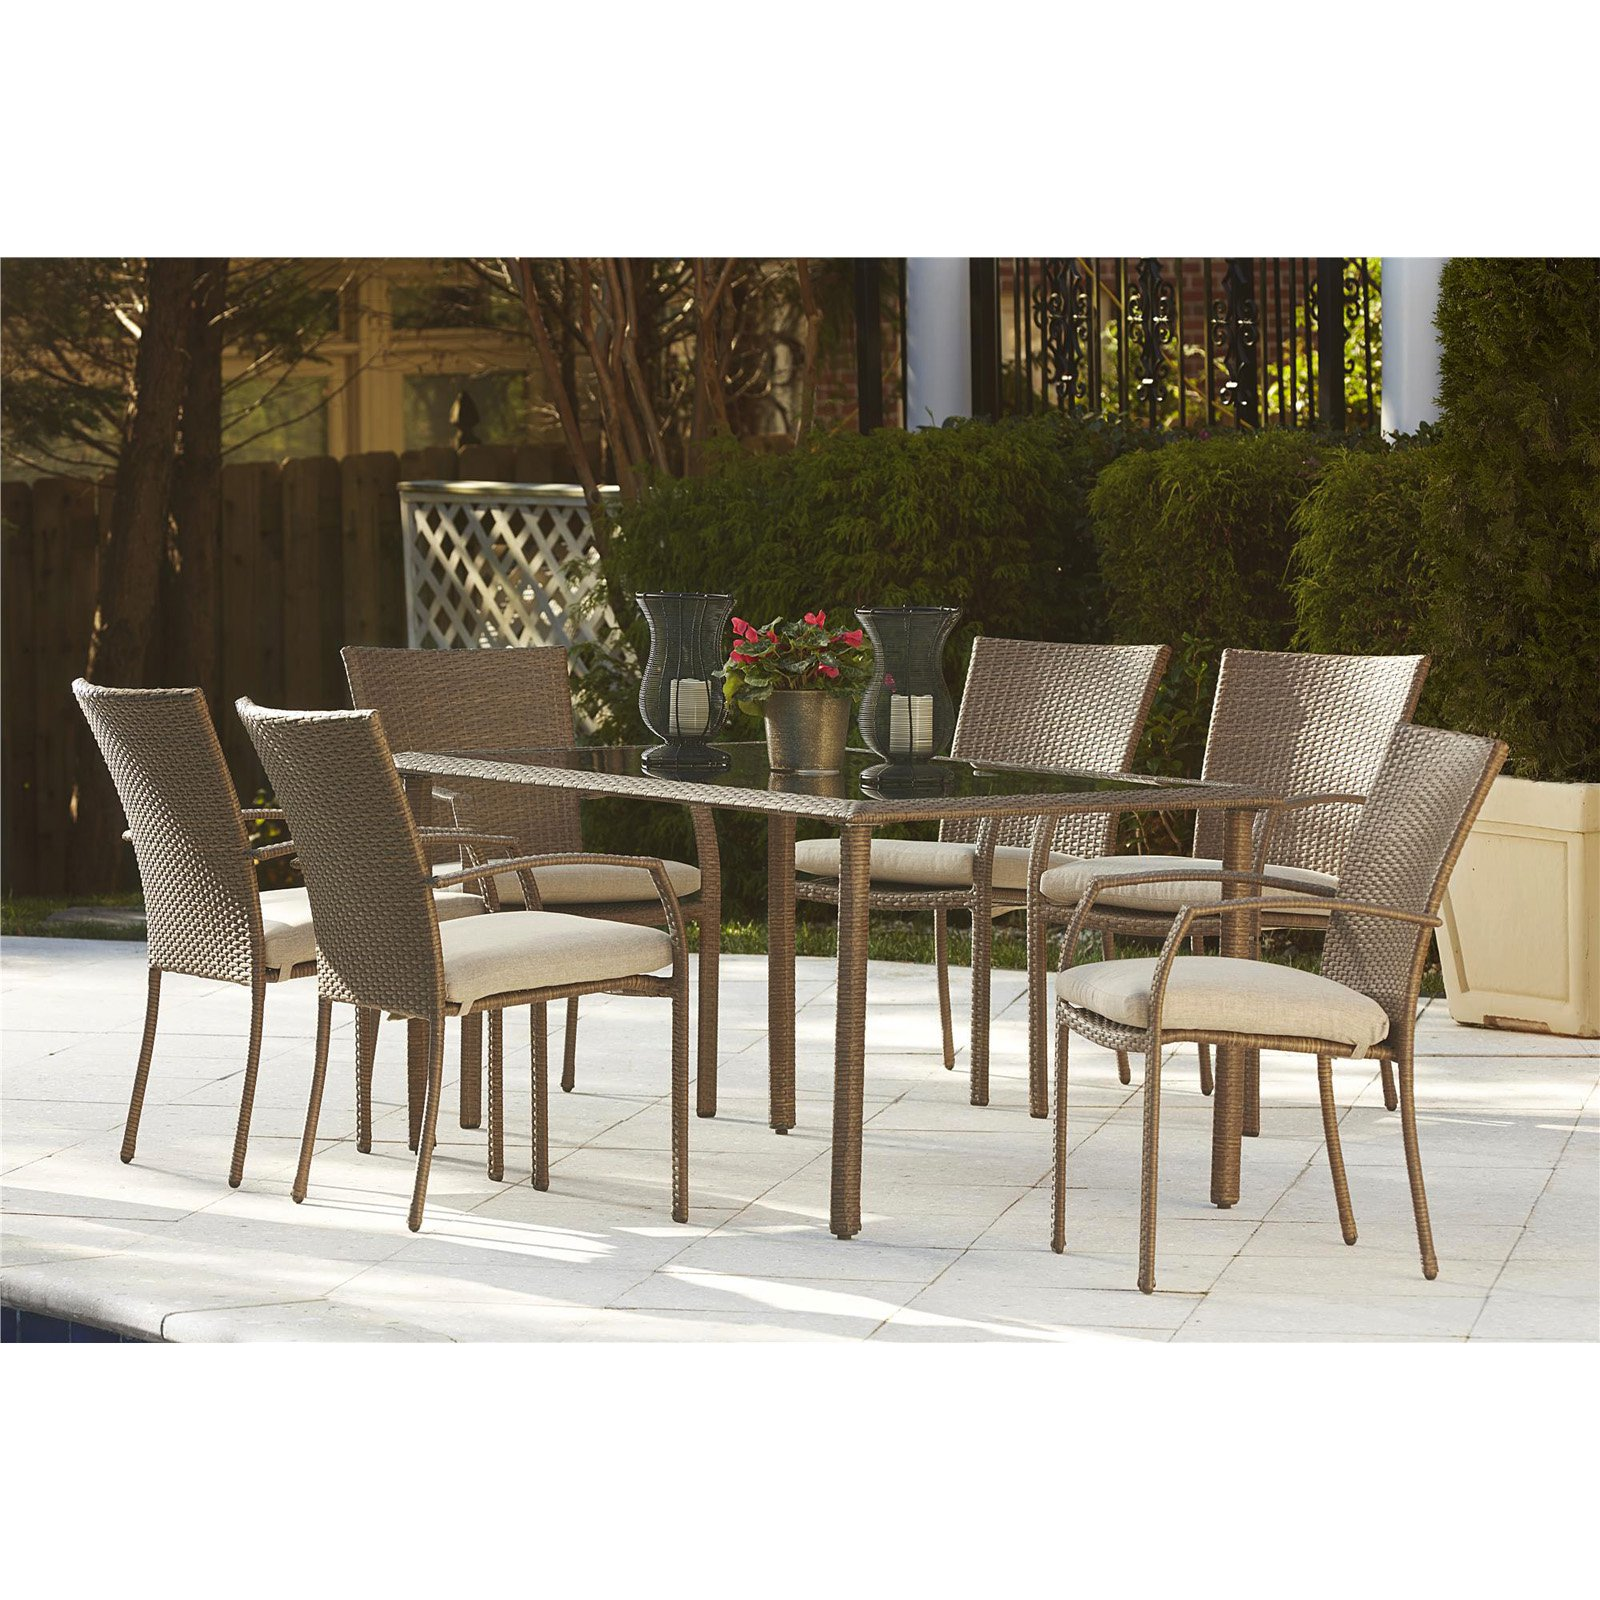 Cosco Outdoor Furniture 7 Piece Lakewood Ranch Steel Woven Wicker